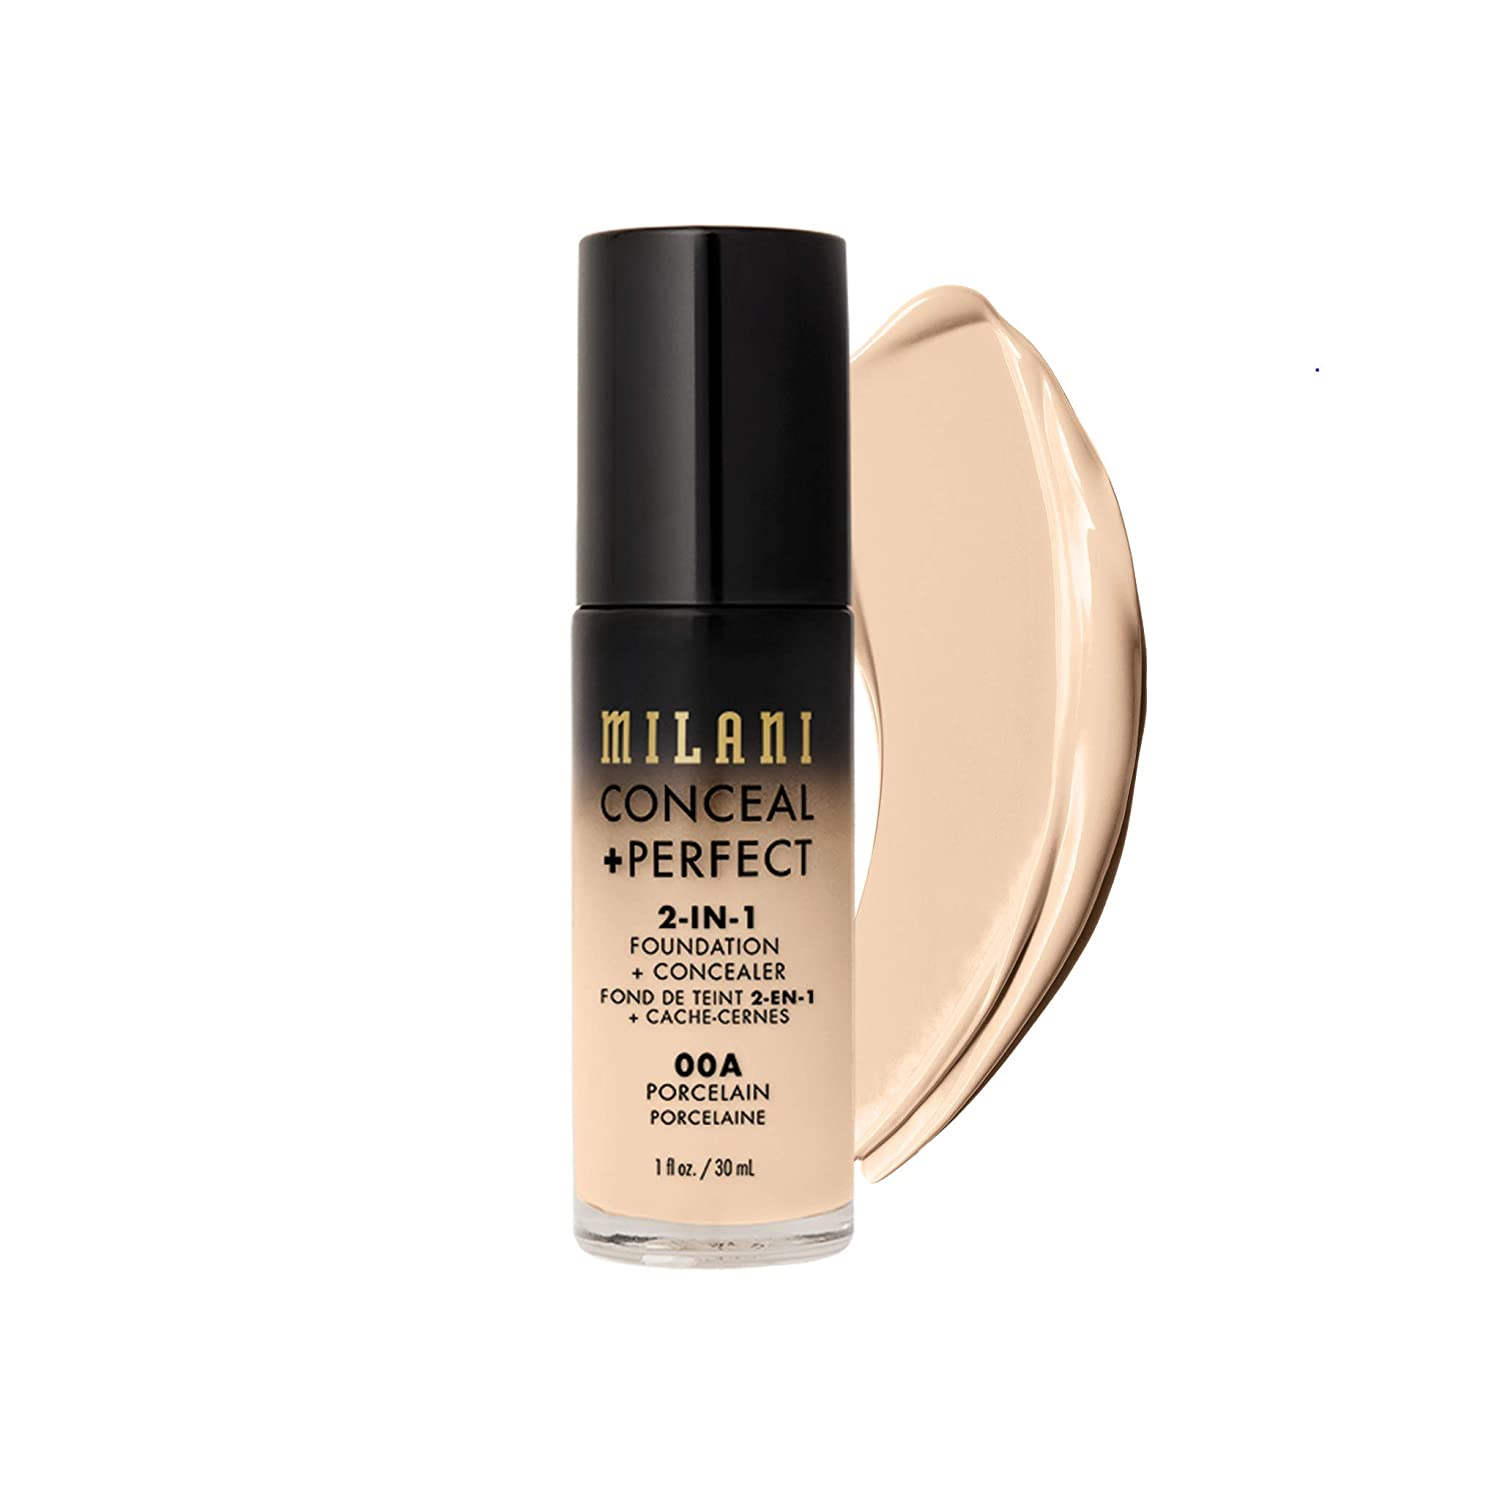 Milani Conceal + Perfect 2-in-1 Foundation + Concealer (1 Fl. Oz.) Cruelty-Free Liquid Foundation - Cover Under-Eye Circles, Blemishes & Skin Discoloration for a Flawless Complexion (Porcelain)